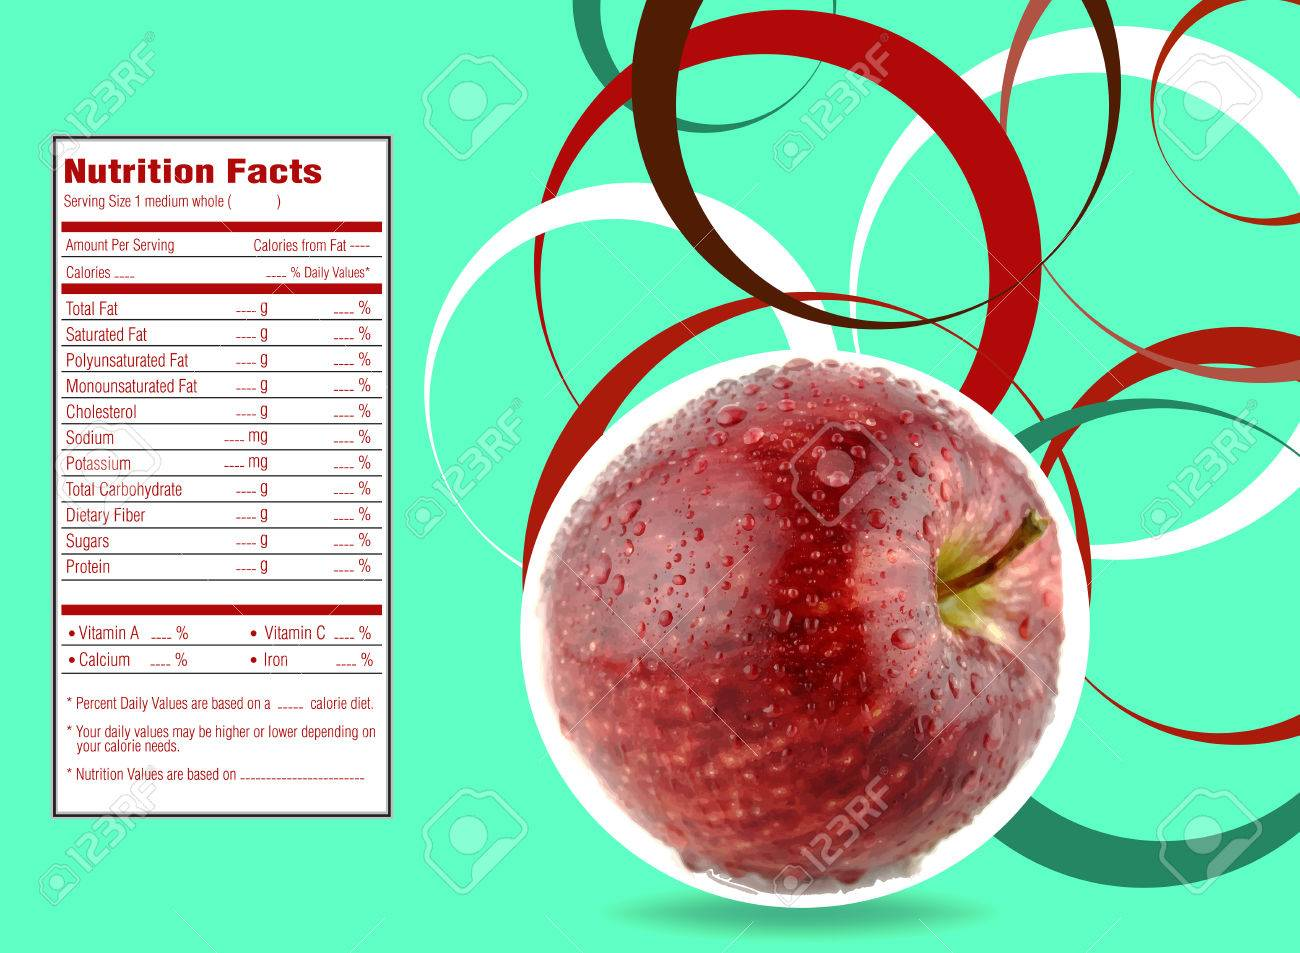 Creative Design For Red Apple With Nutrition Facts Label. Stock ...